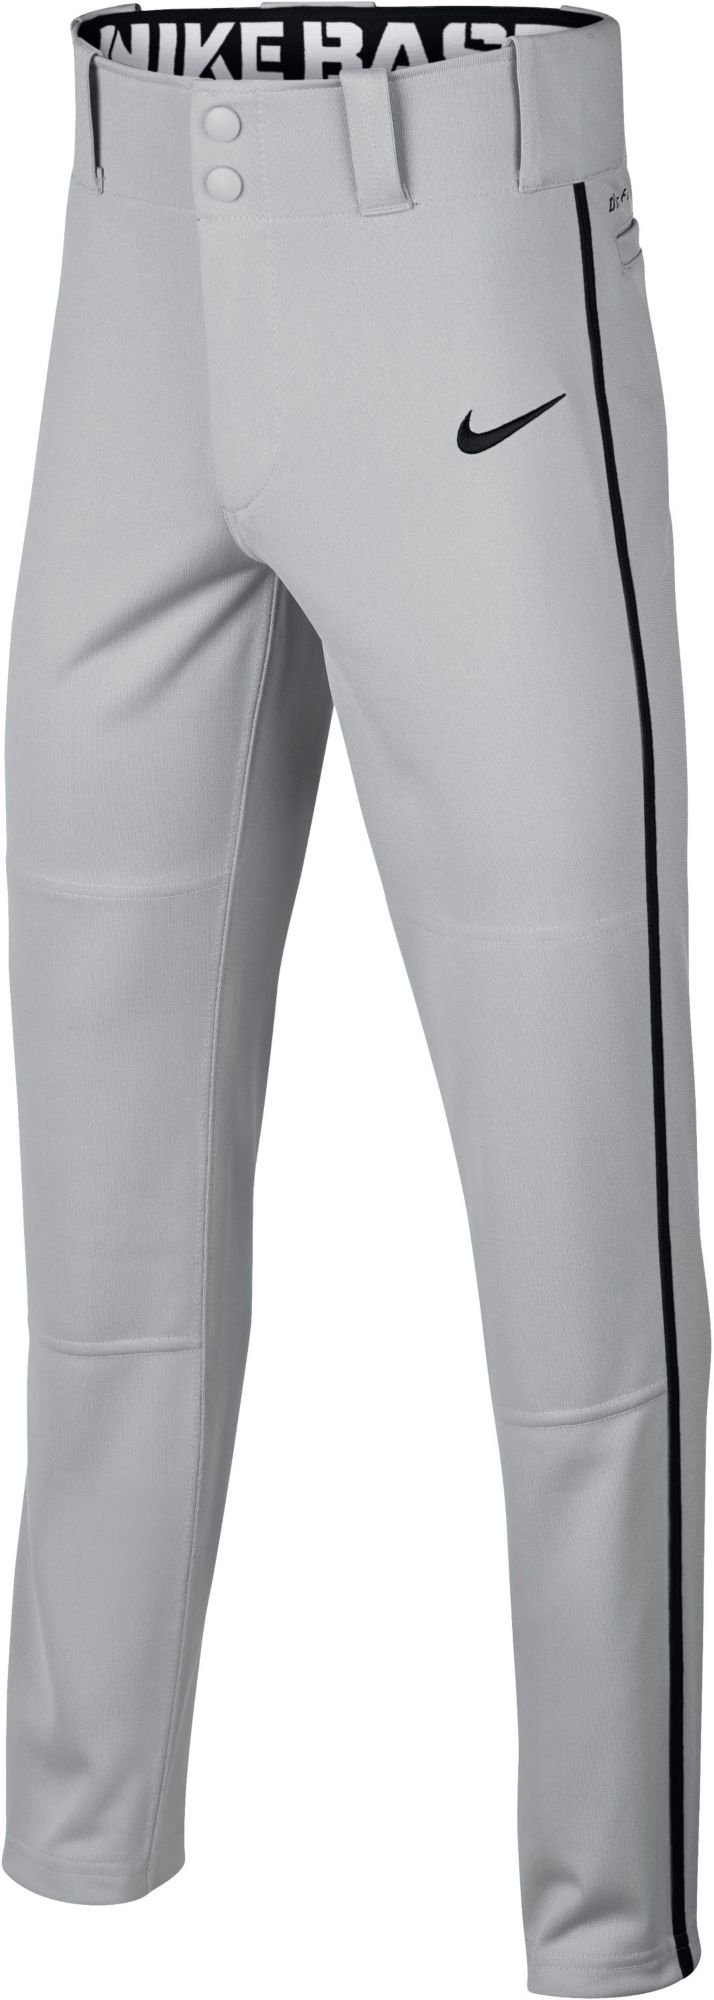 Nike Boy's Swoosh Piped Dri-FIT Baseball Pants (Grey/Black, Large)